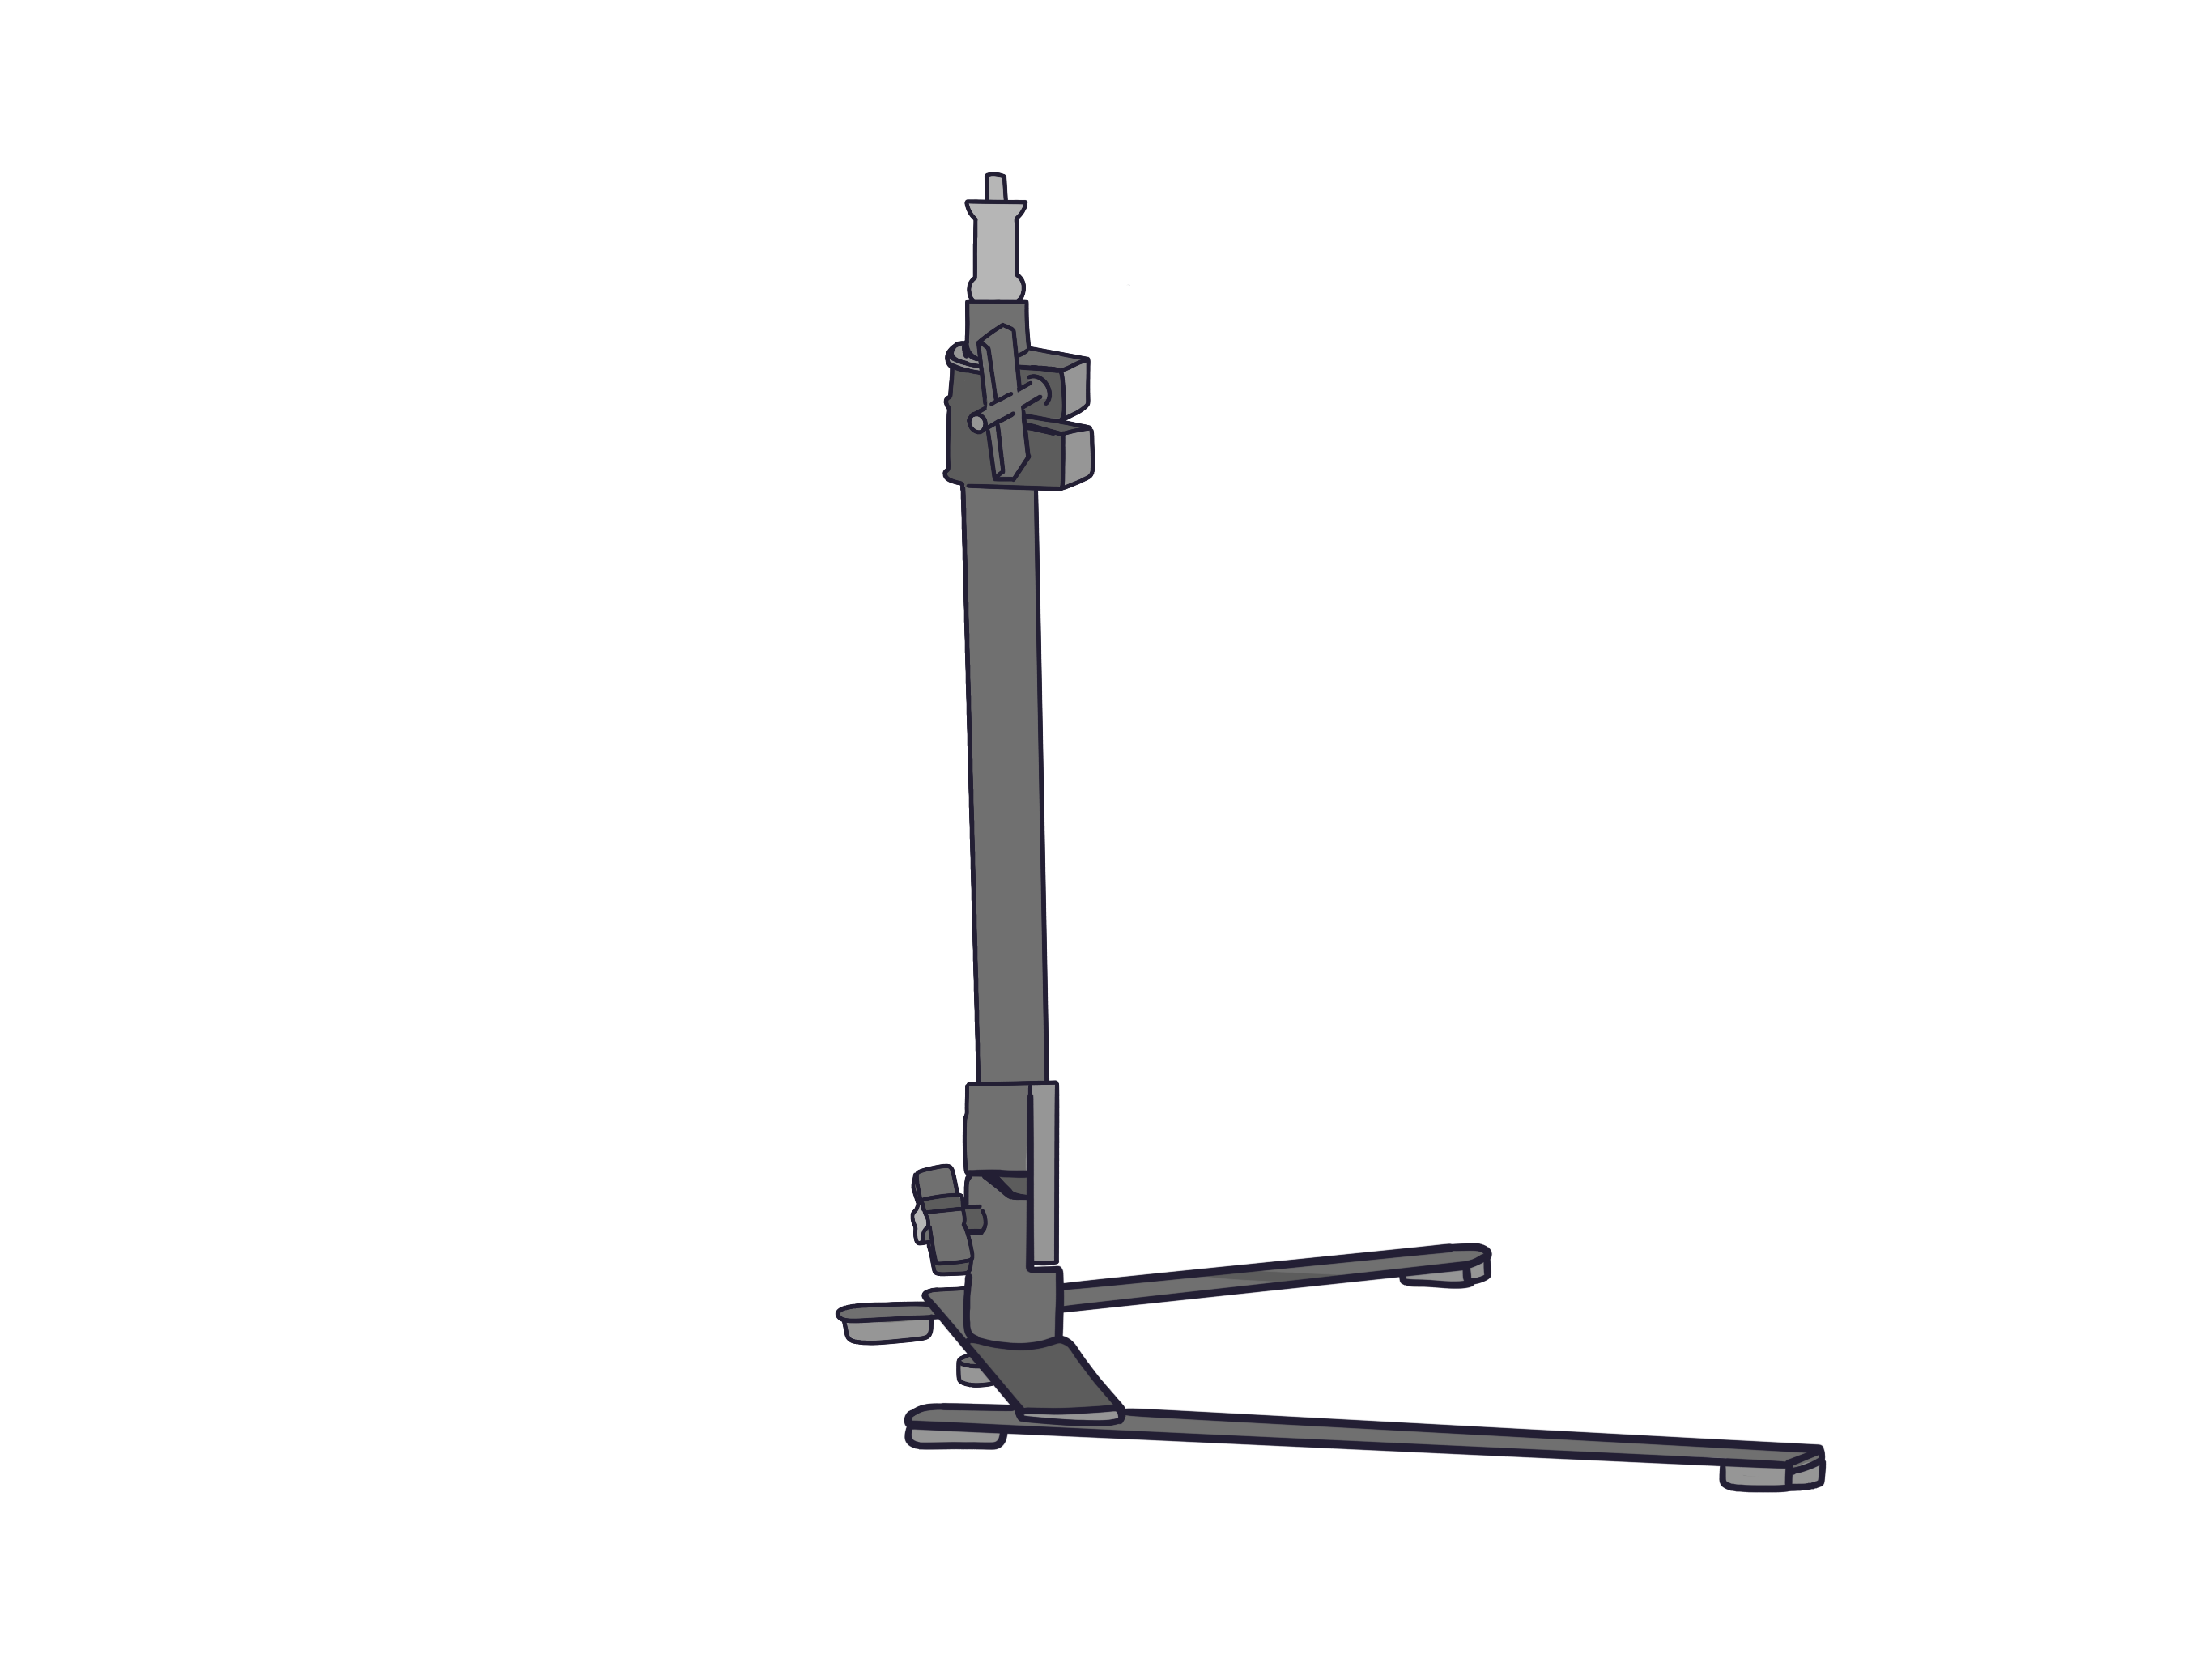 Camera Mount. A long adjustable stand with legs that extend out for balance.